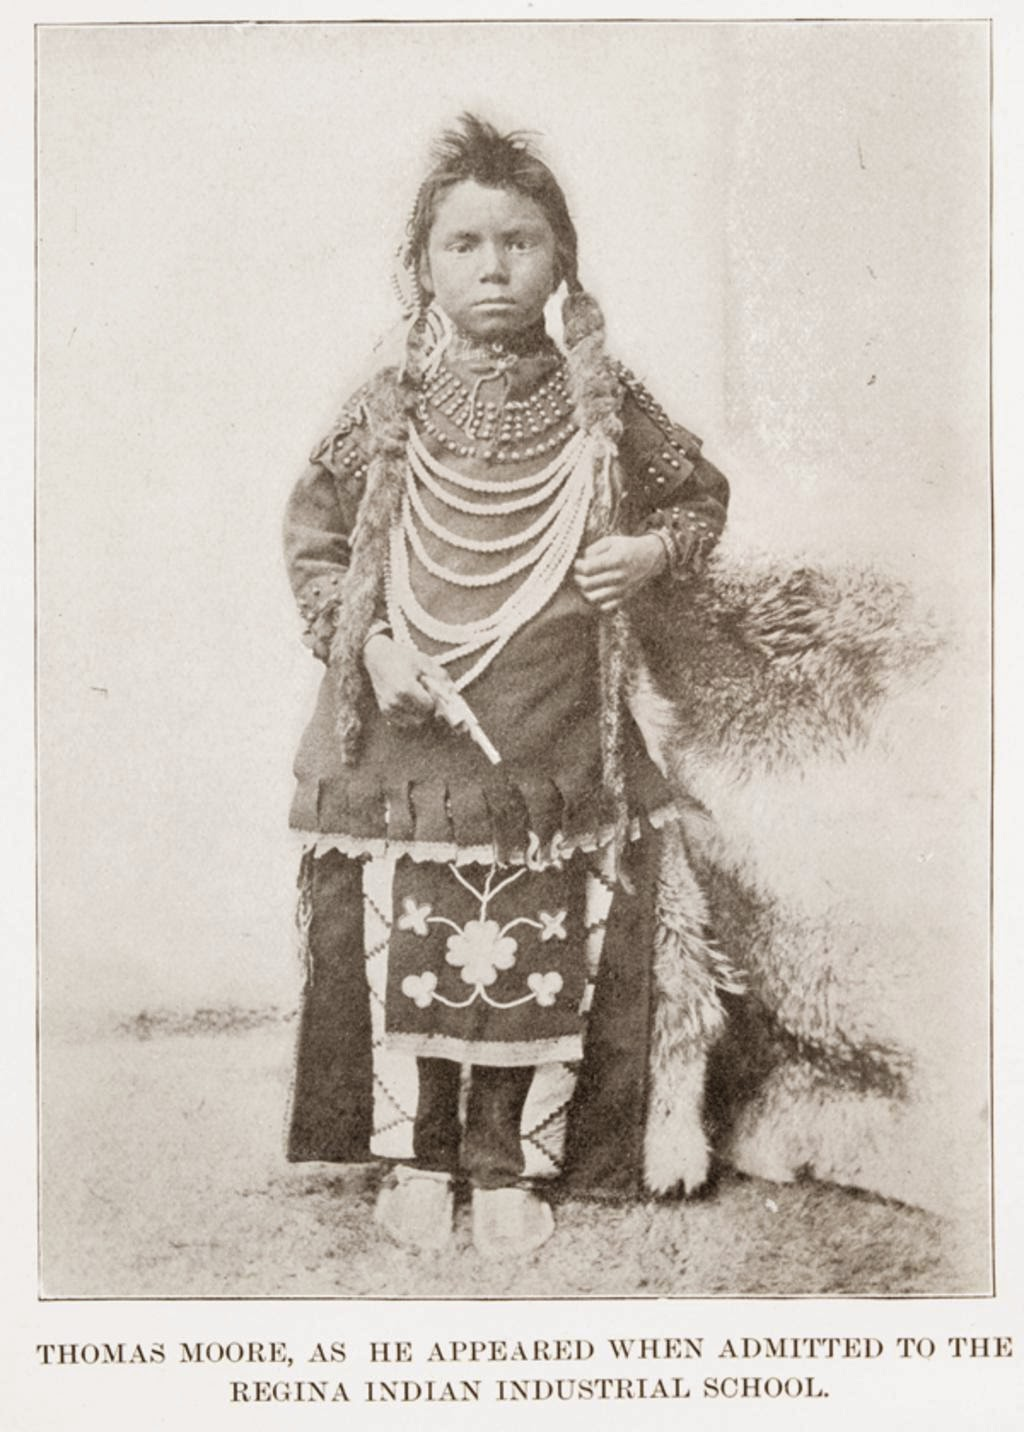 Young Thomas Moore before entering residential school in full First Nations clothing and accessories